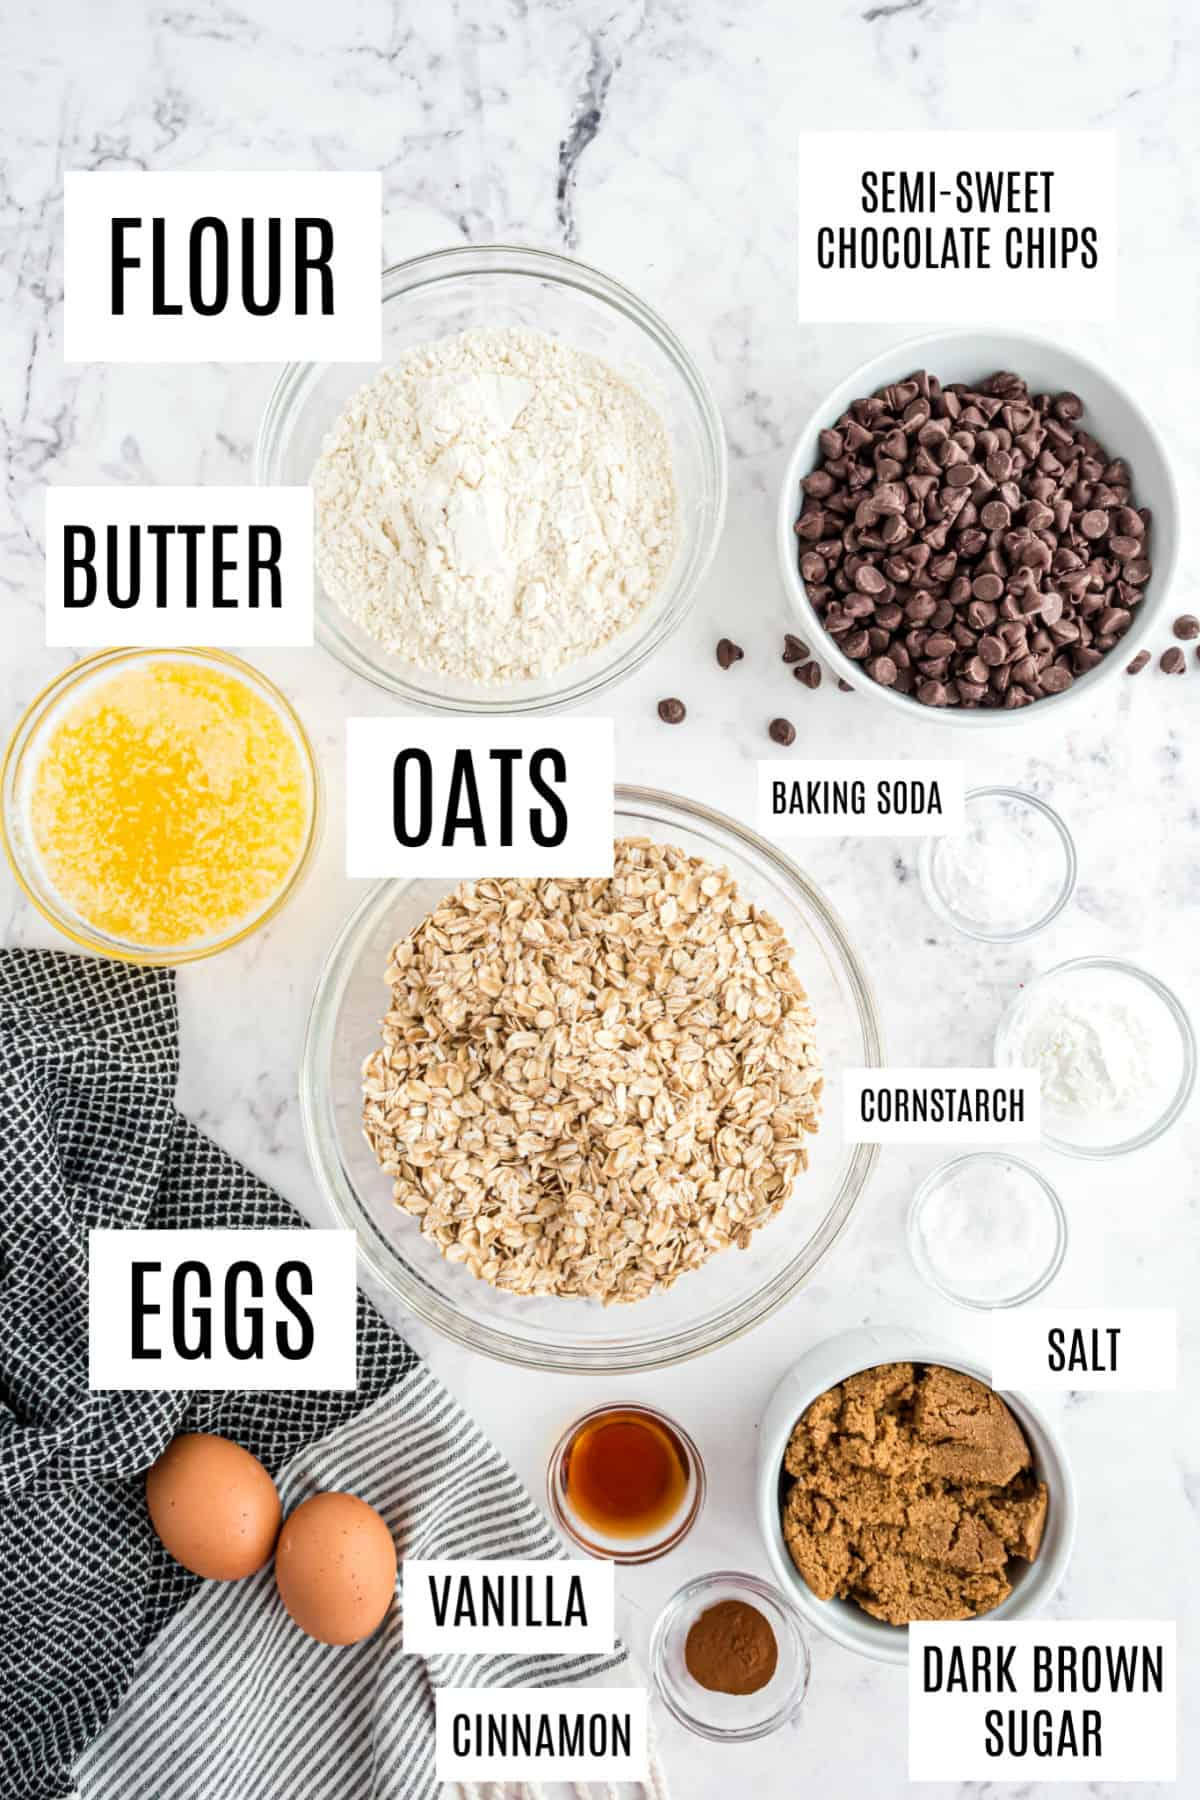 Ingredients needed for oatmeal chocolate chip cookies including butter and old fashioned oats.